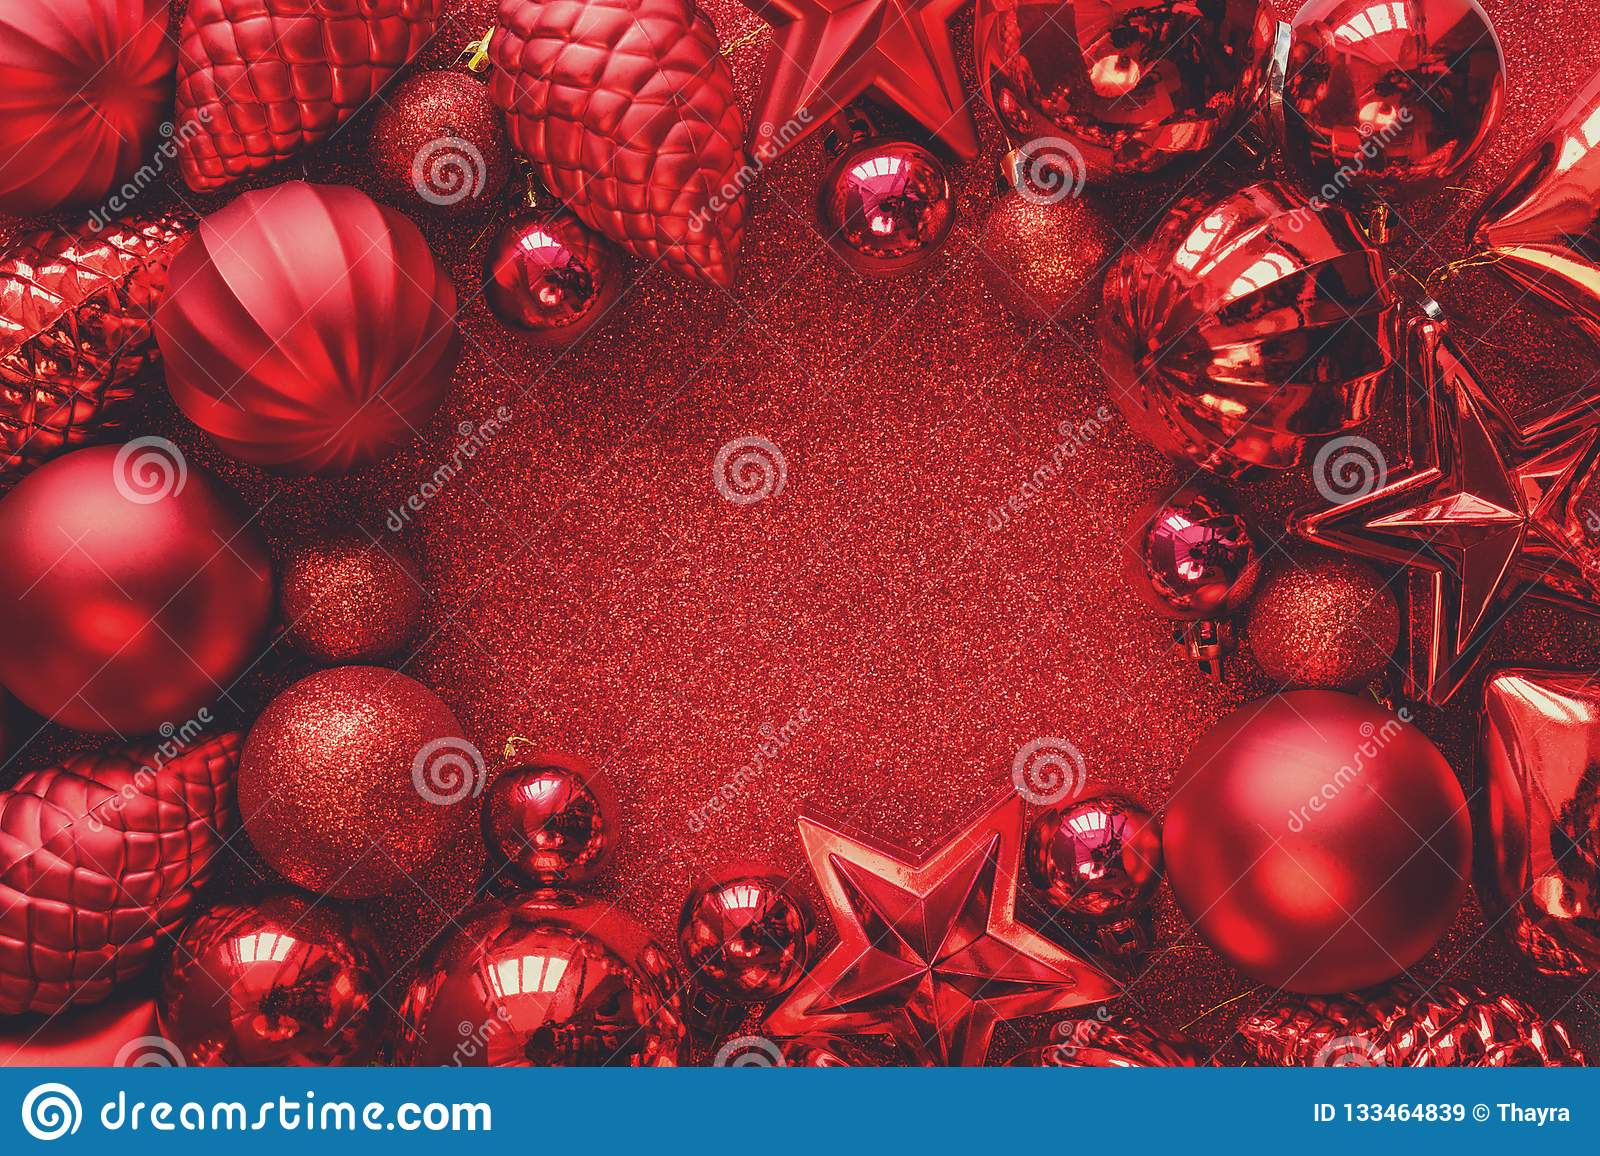 Red Christmas frame. Christmas balls, stars, cones and hearts on red sparkles background. Flat lay. Top view.